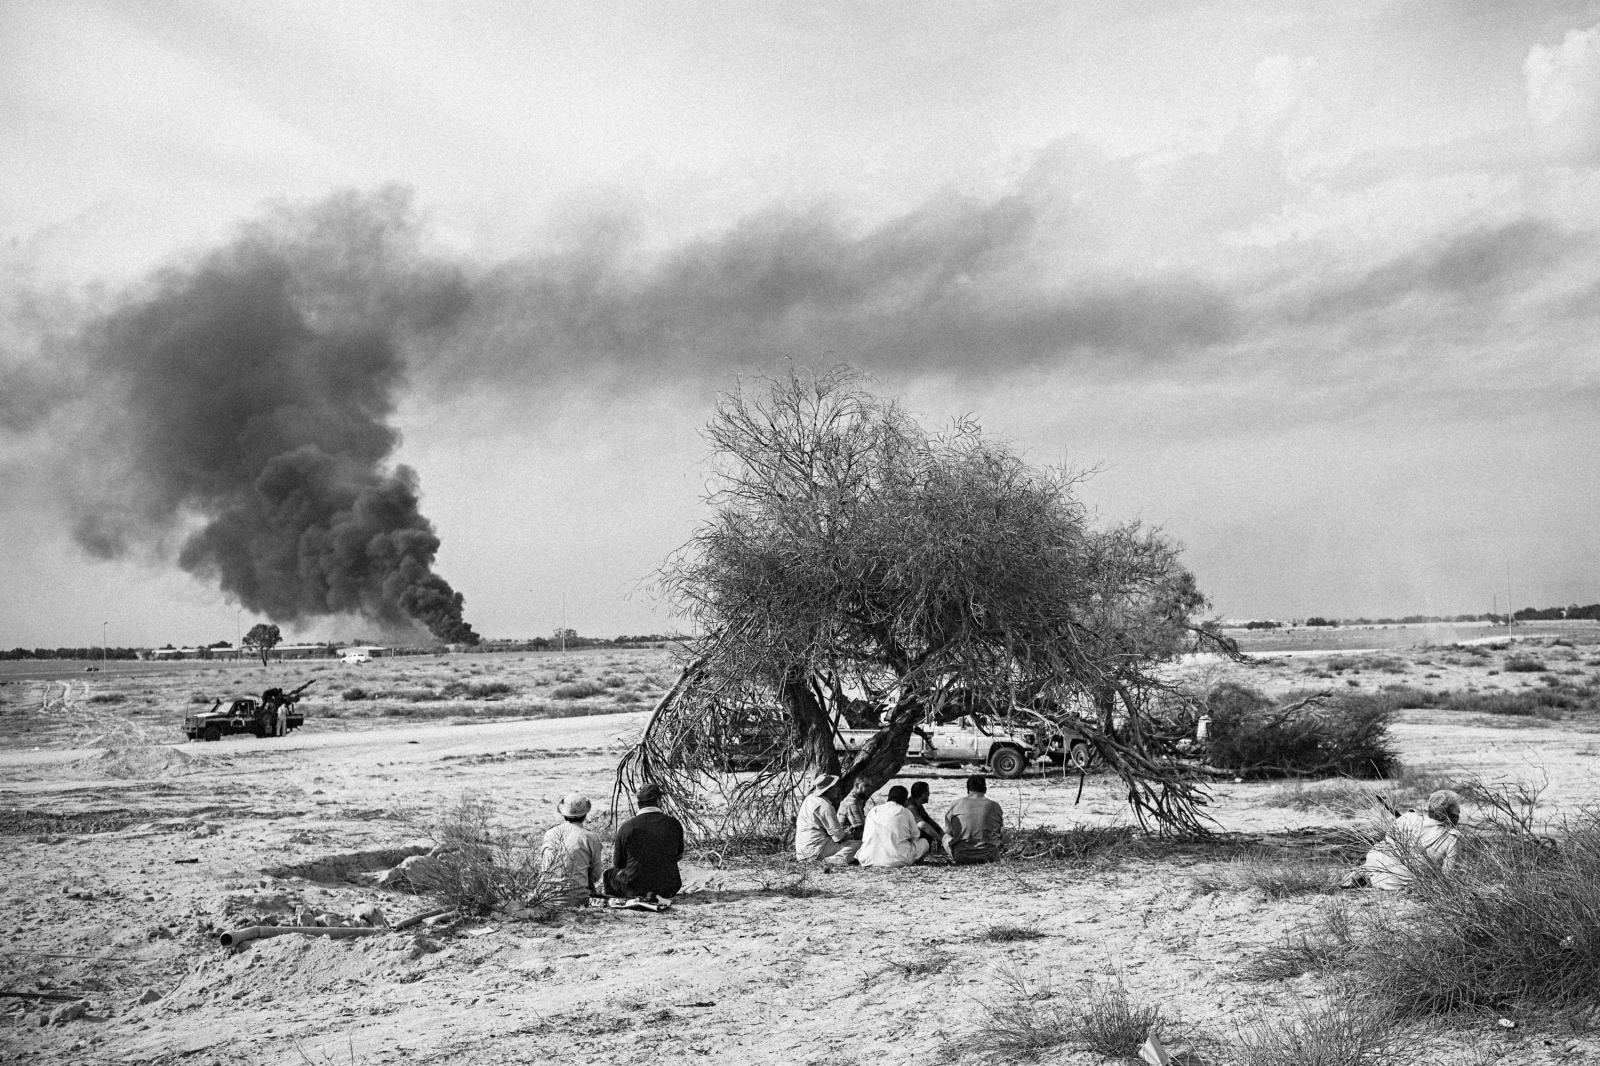 Farm buildings burn in the distance as fighters rest on the outskirts of Sirte, October 7, 2011.